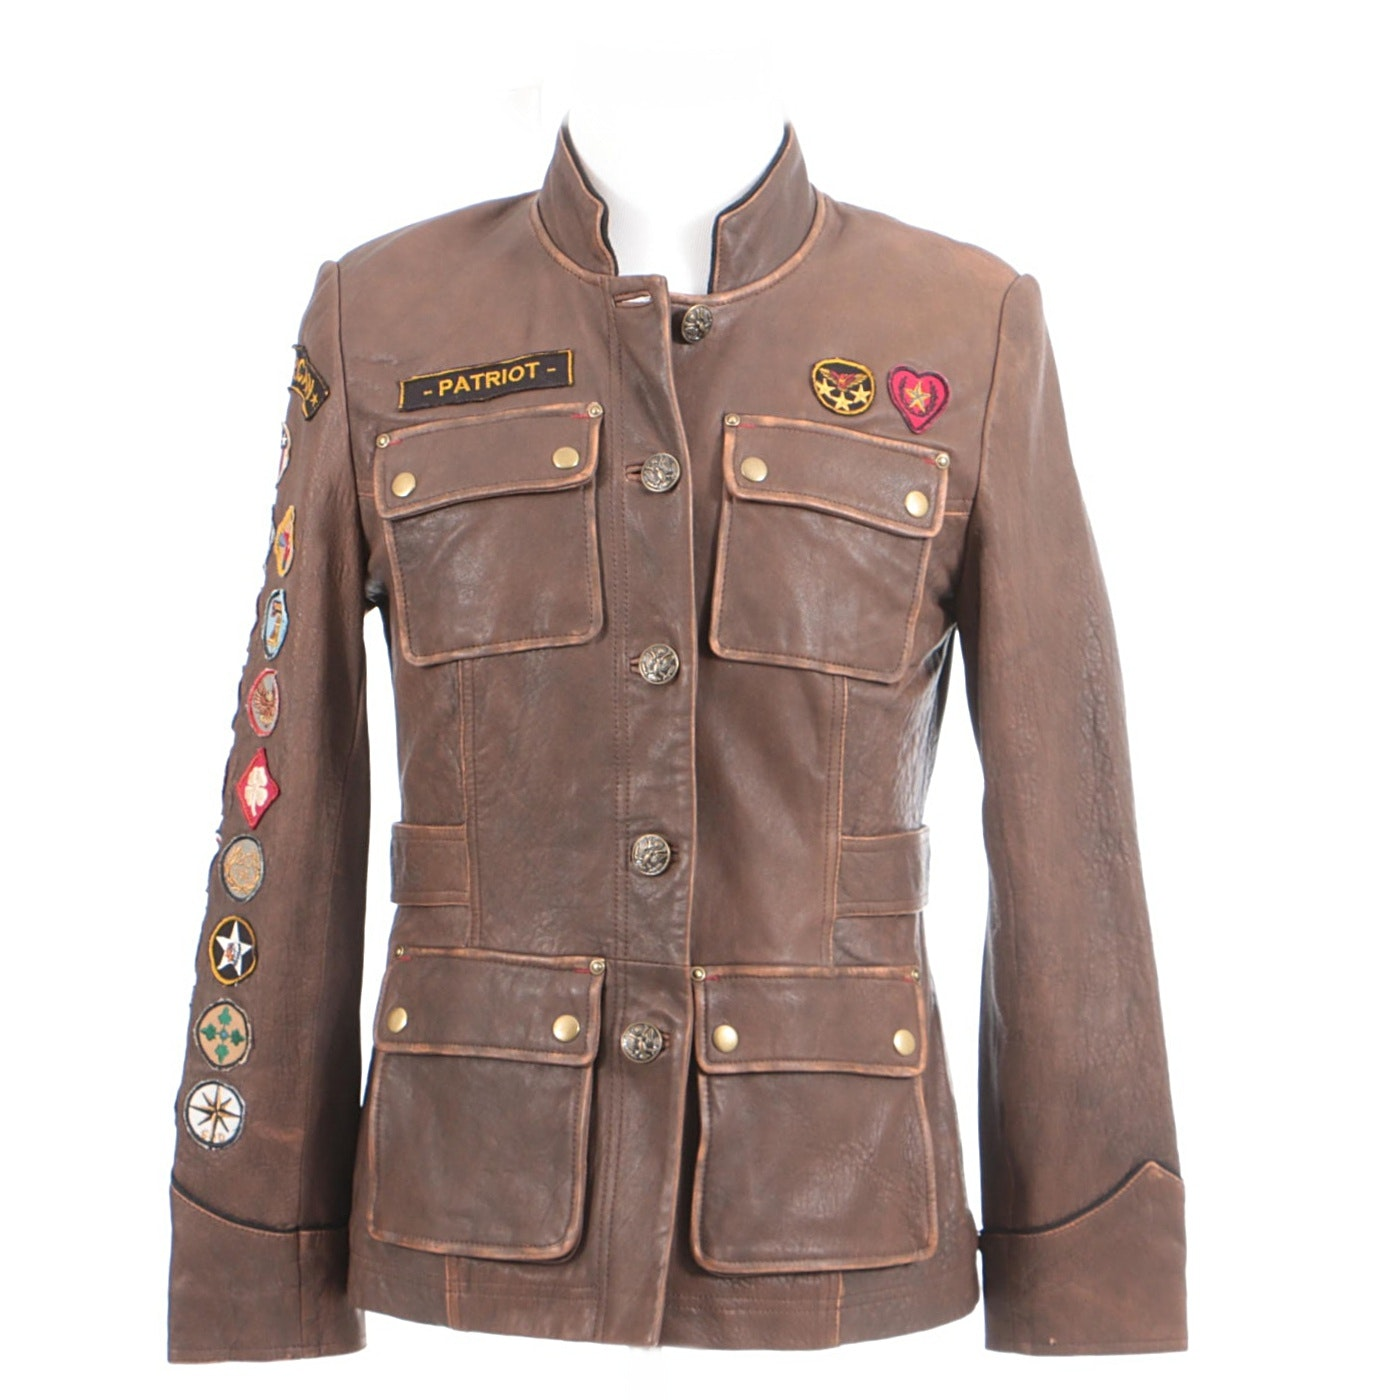 Circa 2009 Double D Ranch of Yoakum, Texas Patriot Brown Leather Jacket